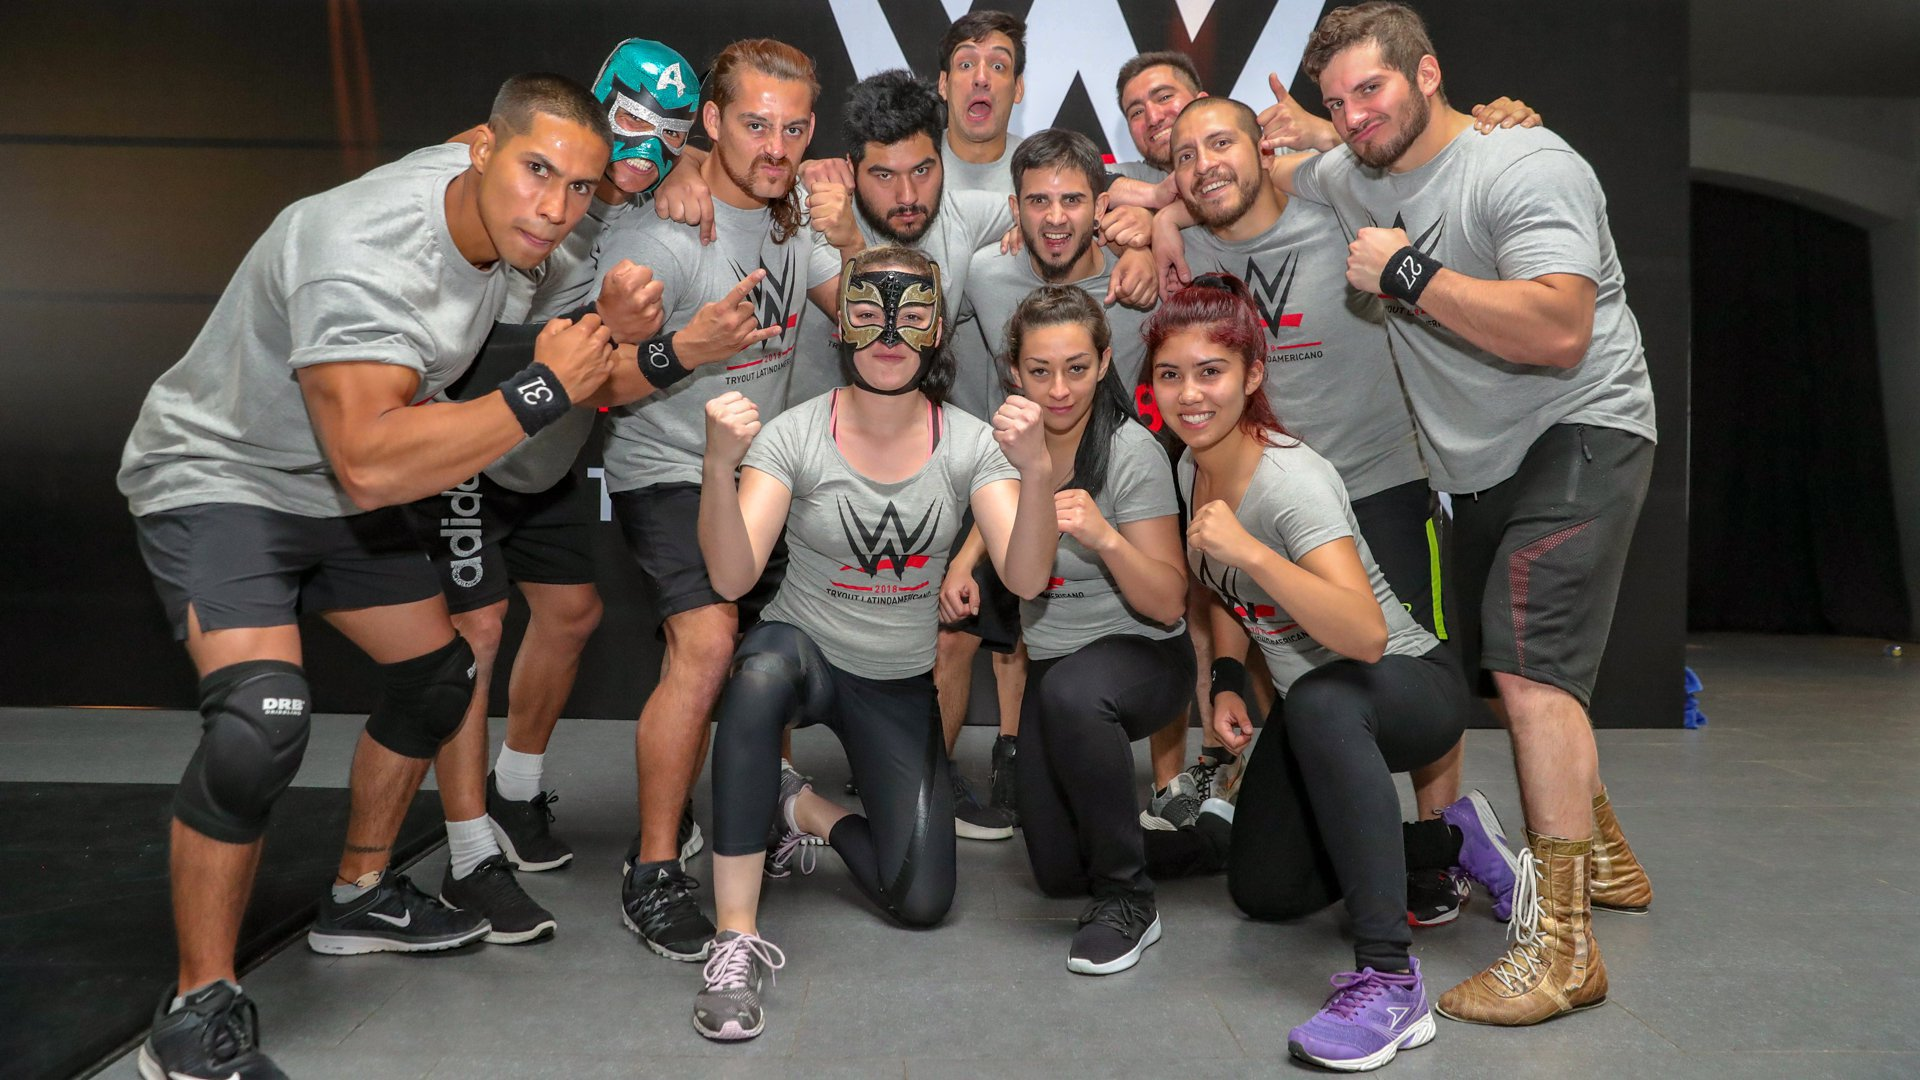 The host country of Chile is well represented, with luminaires such as WWE Cruiserweight Classic competitor Manuel Alejandro Saez and 2018 Mae Young Classic competitor Zatara.